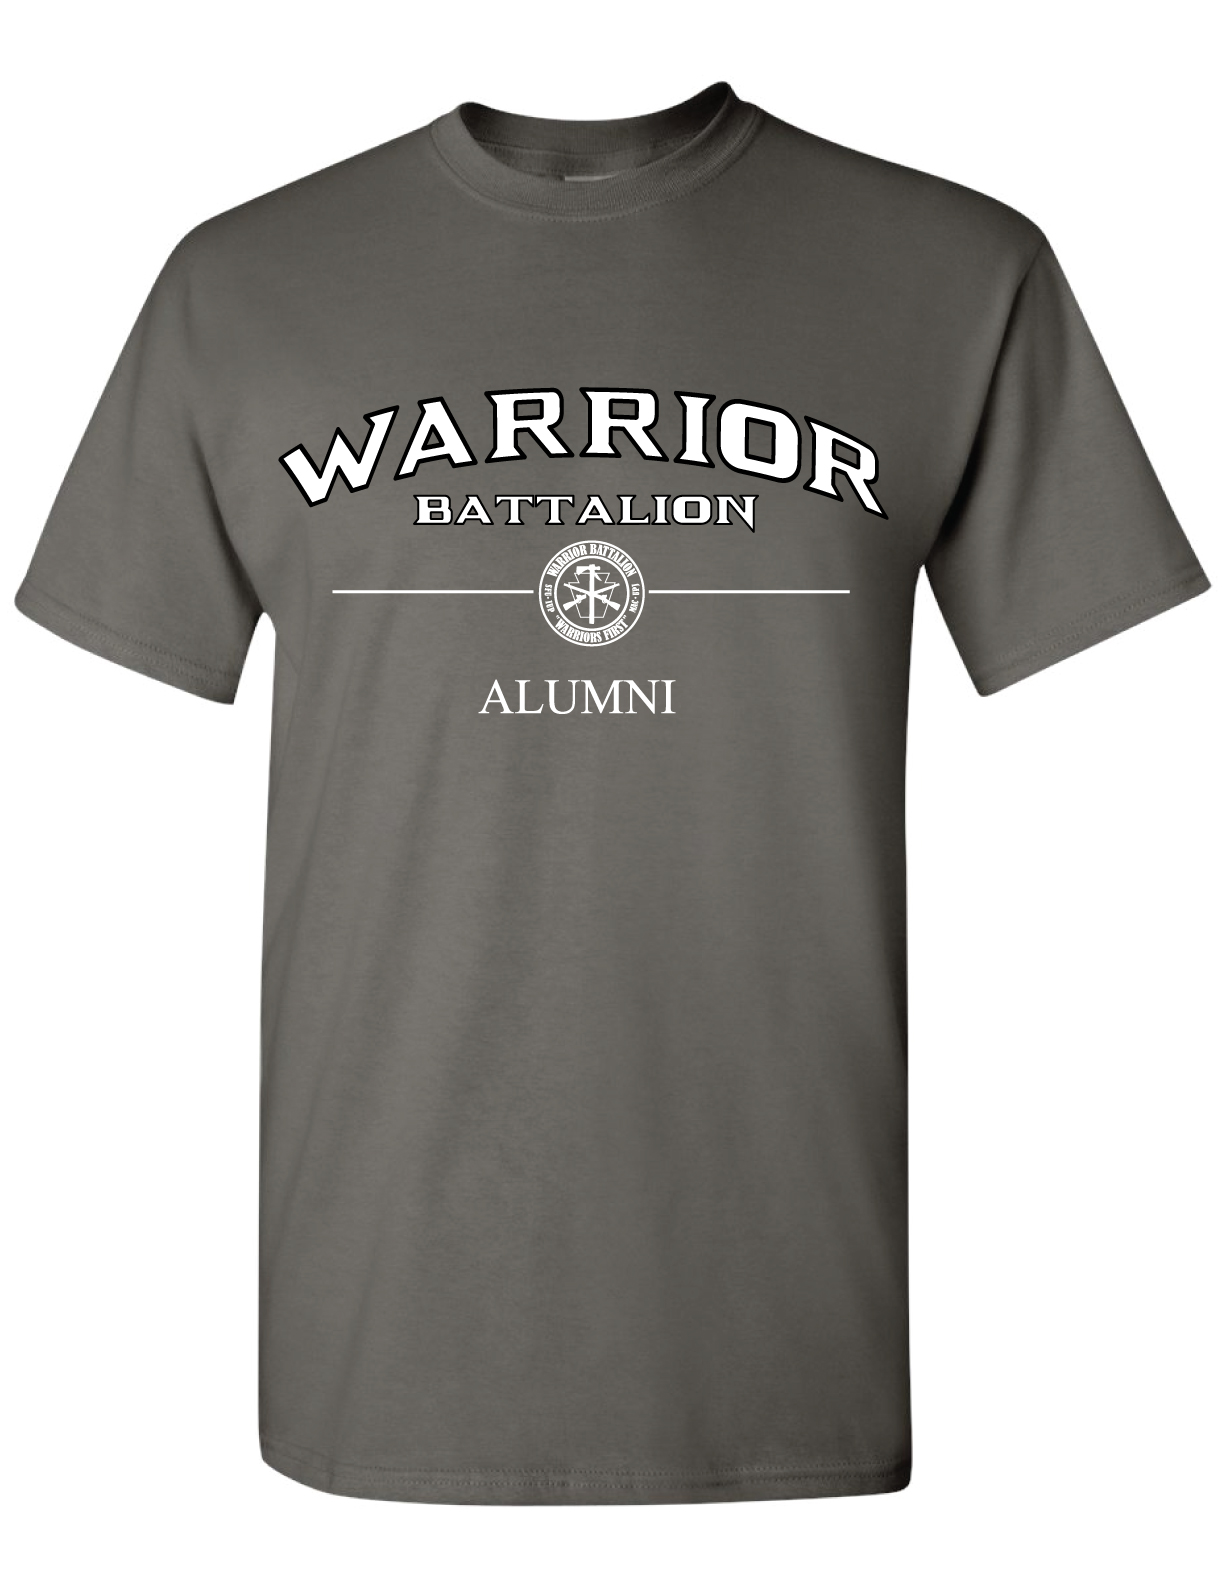 T-Shirt, Gray (Alumni)